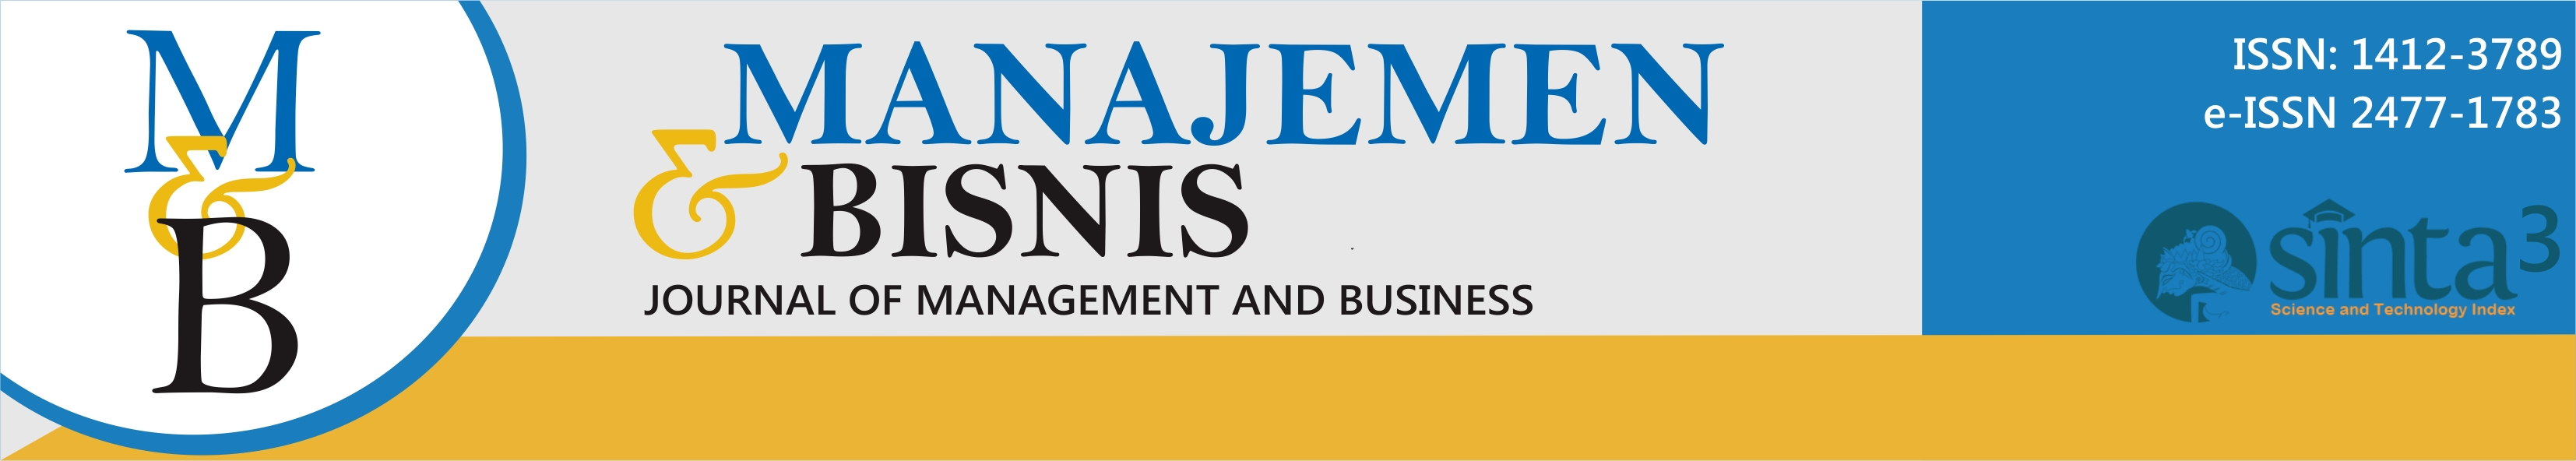 Journal of Management and Business